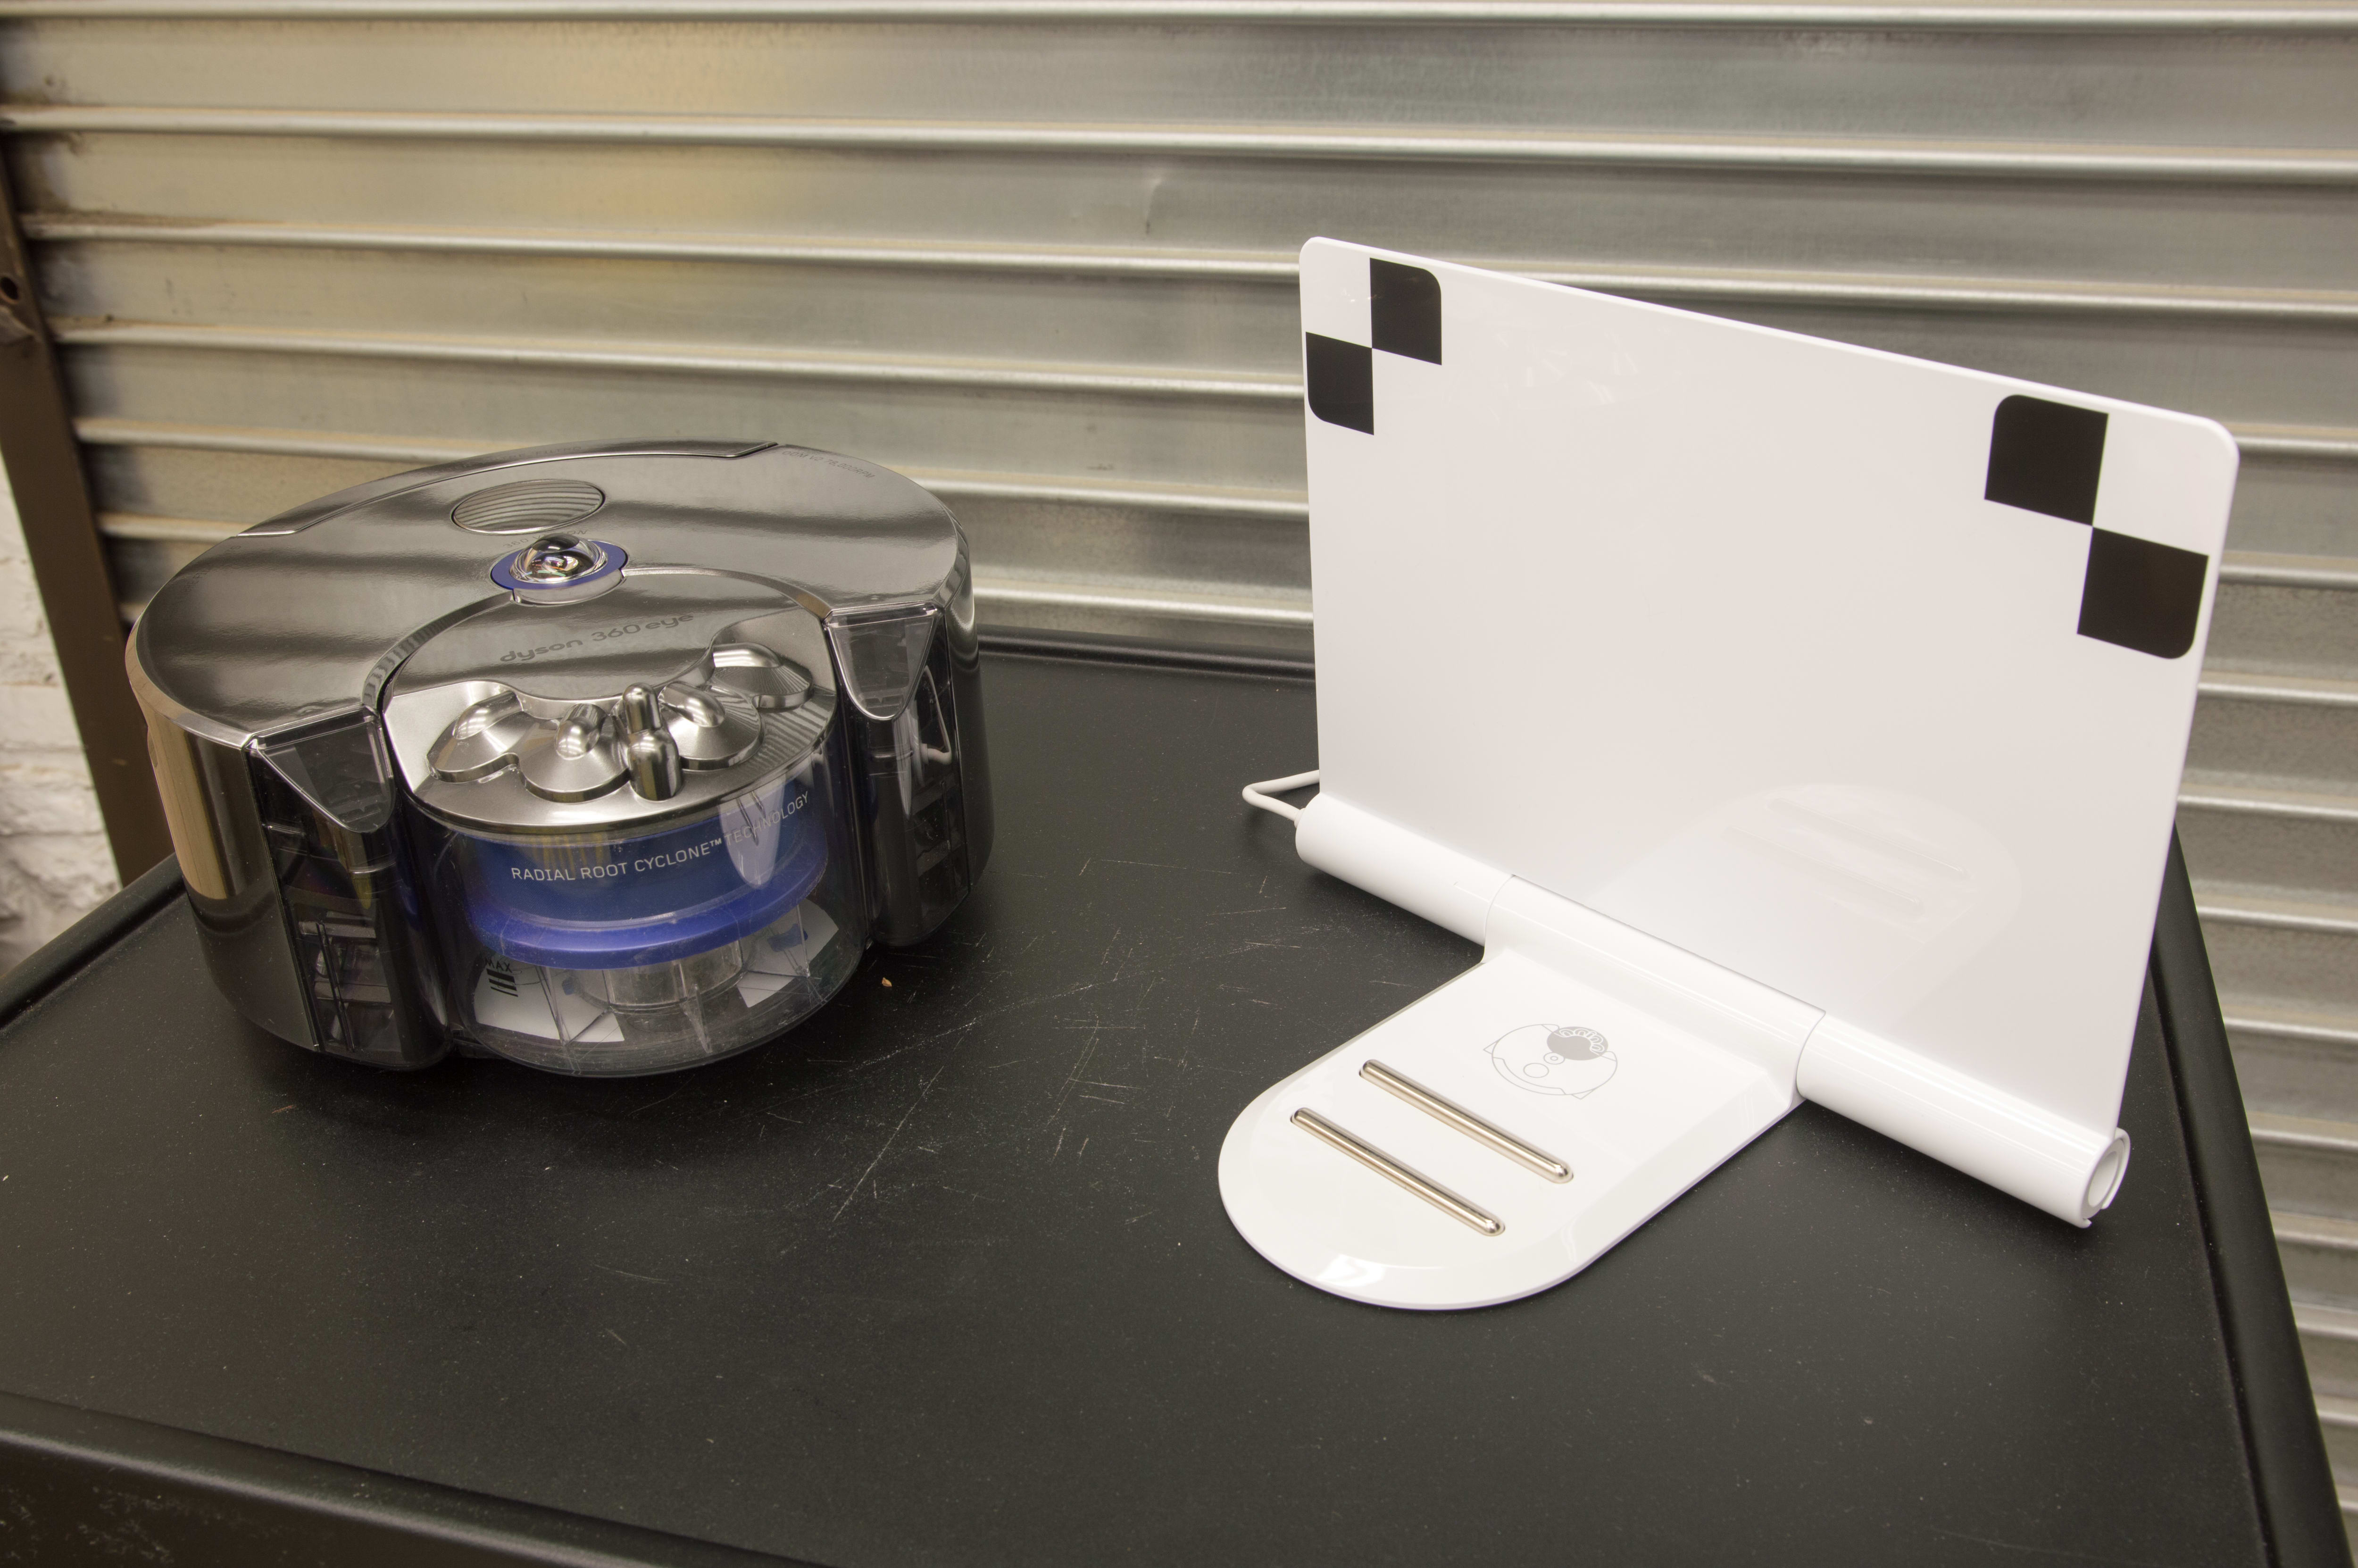 The Dyson 360 Eye only comes with the unit itself and a charging dock.